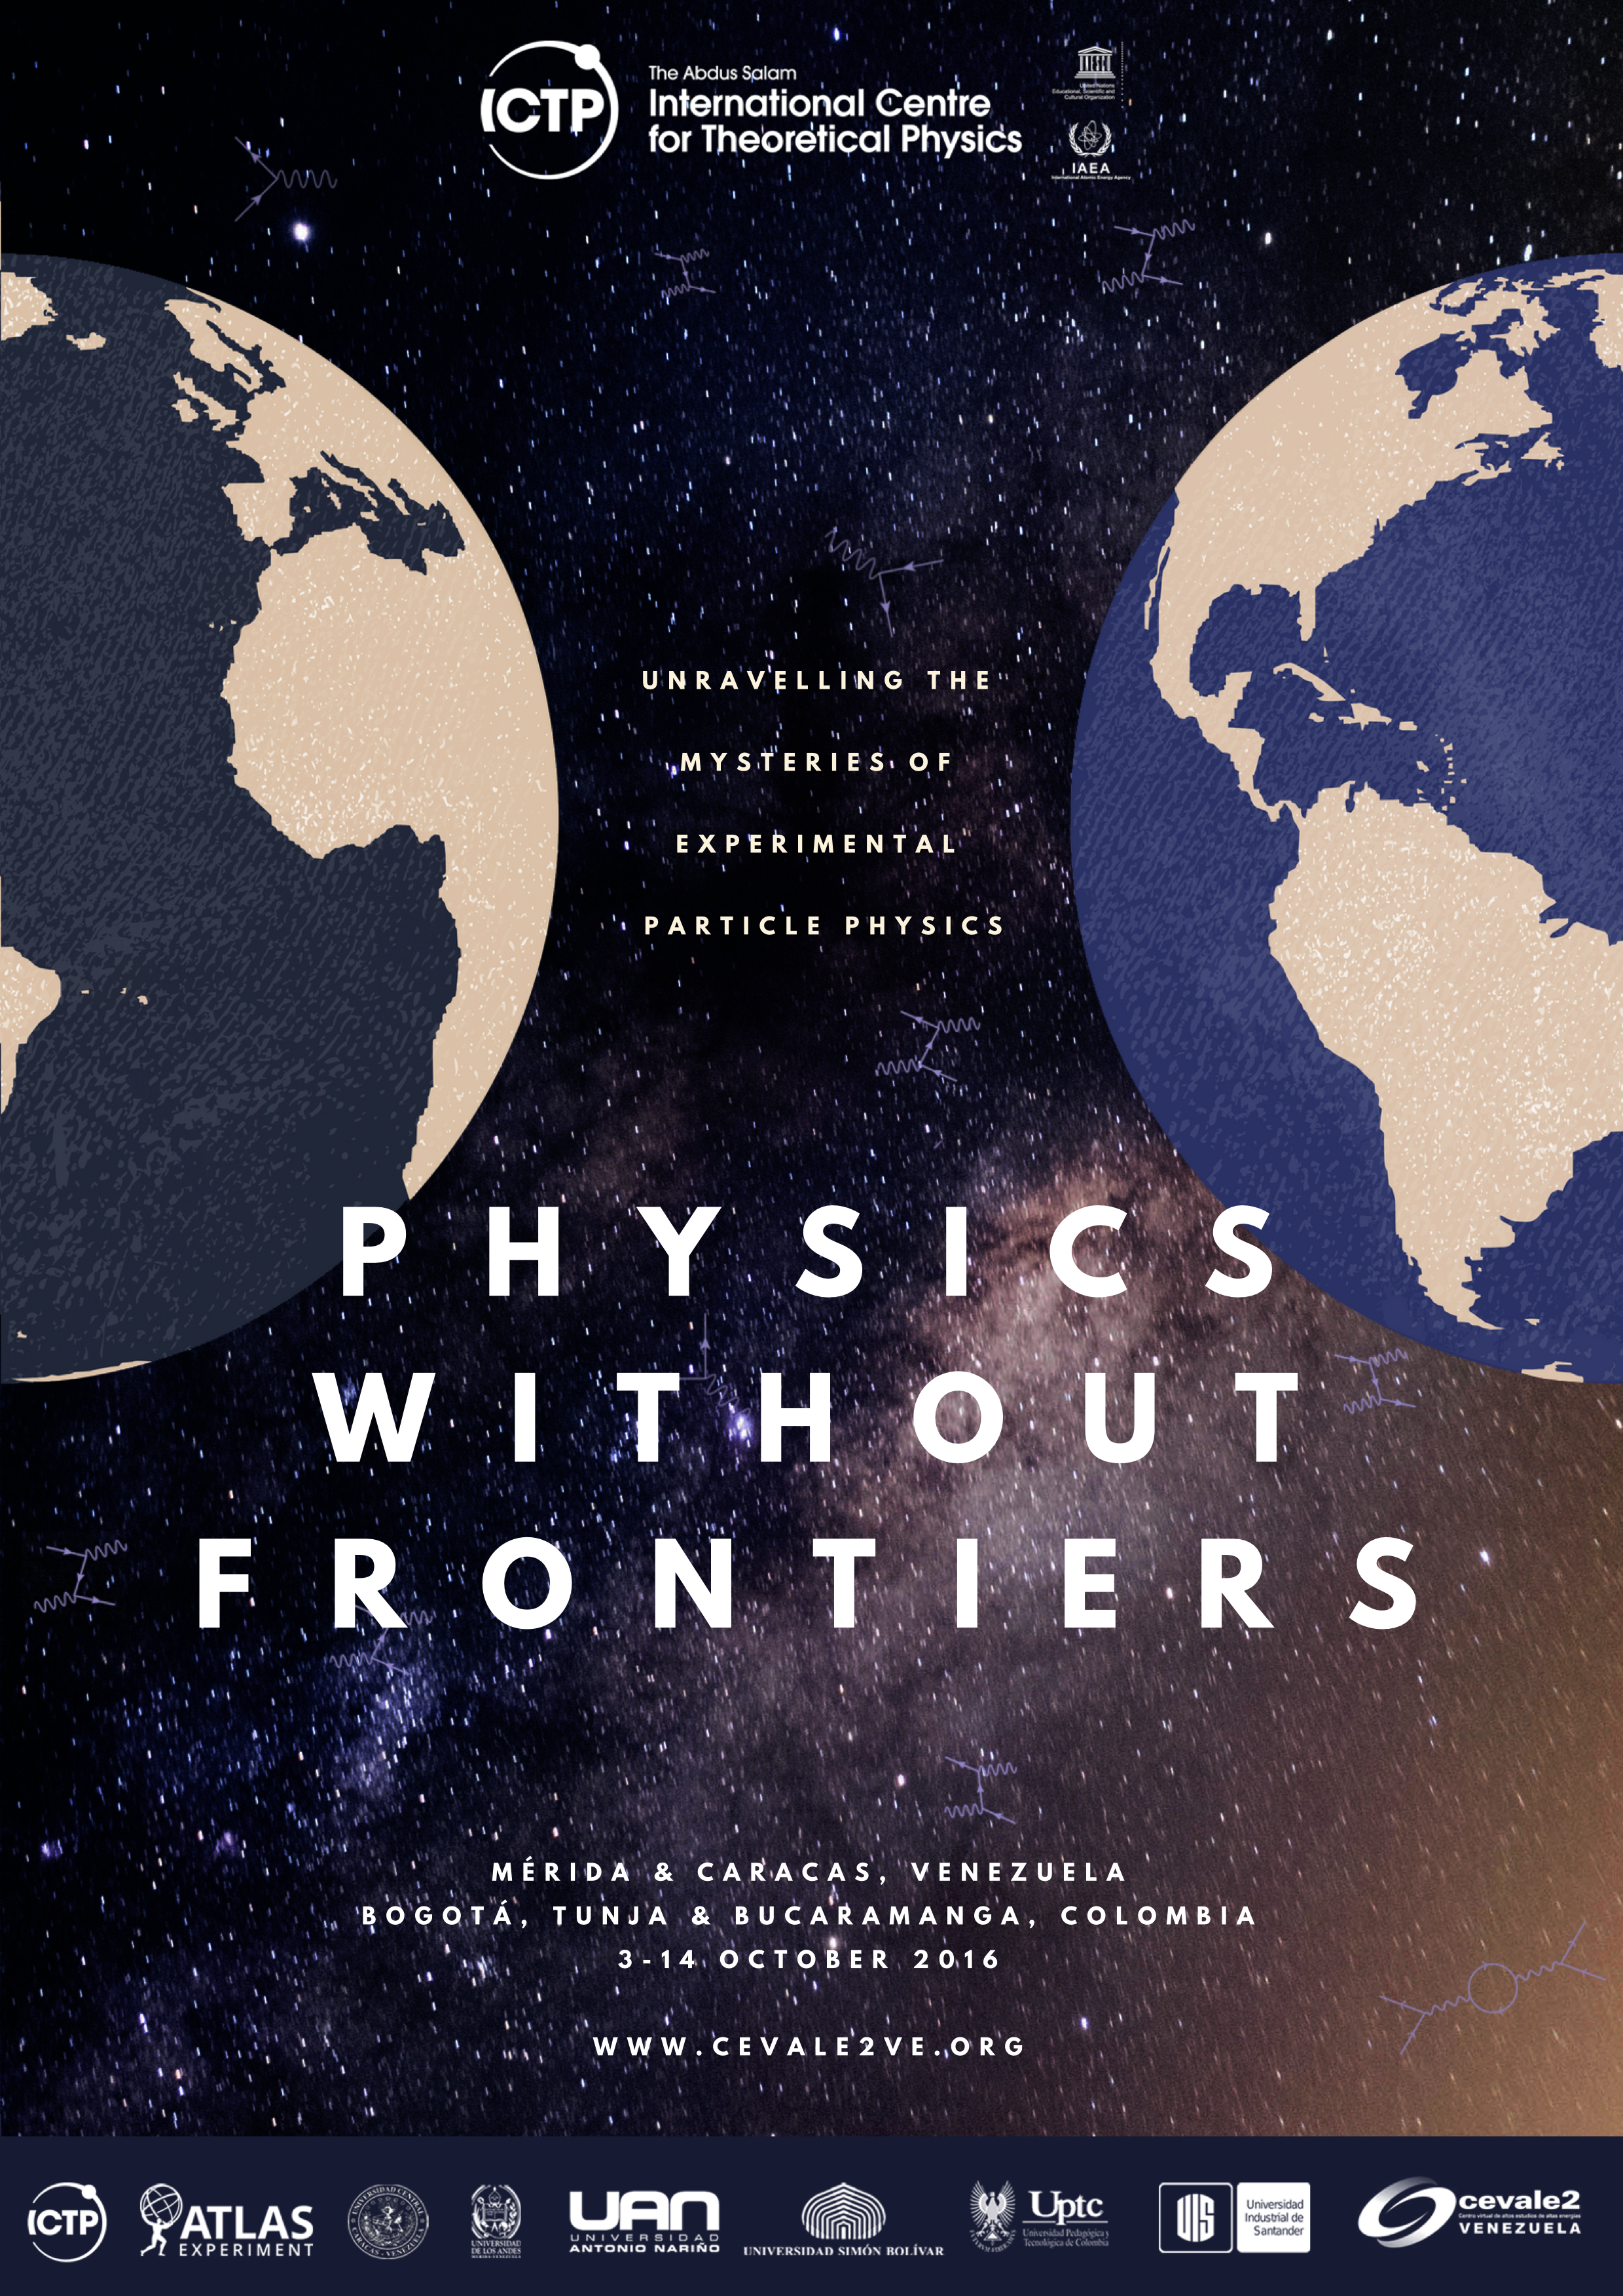 Physics Without Frontiers   CEVALE2VE